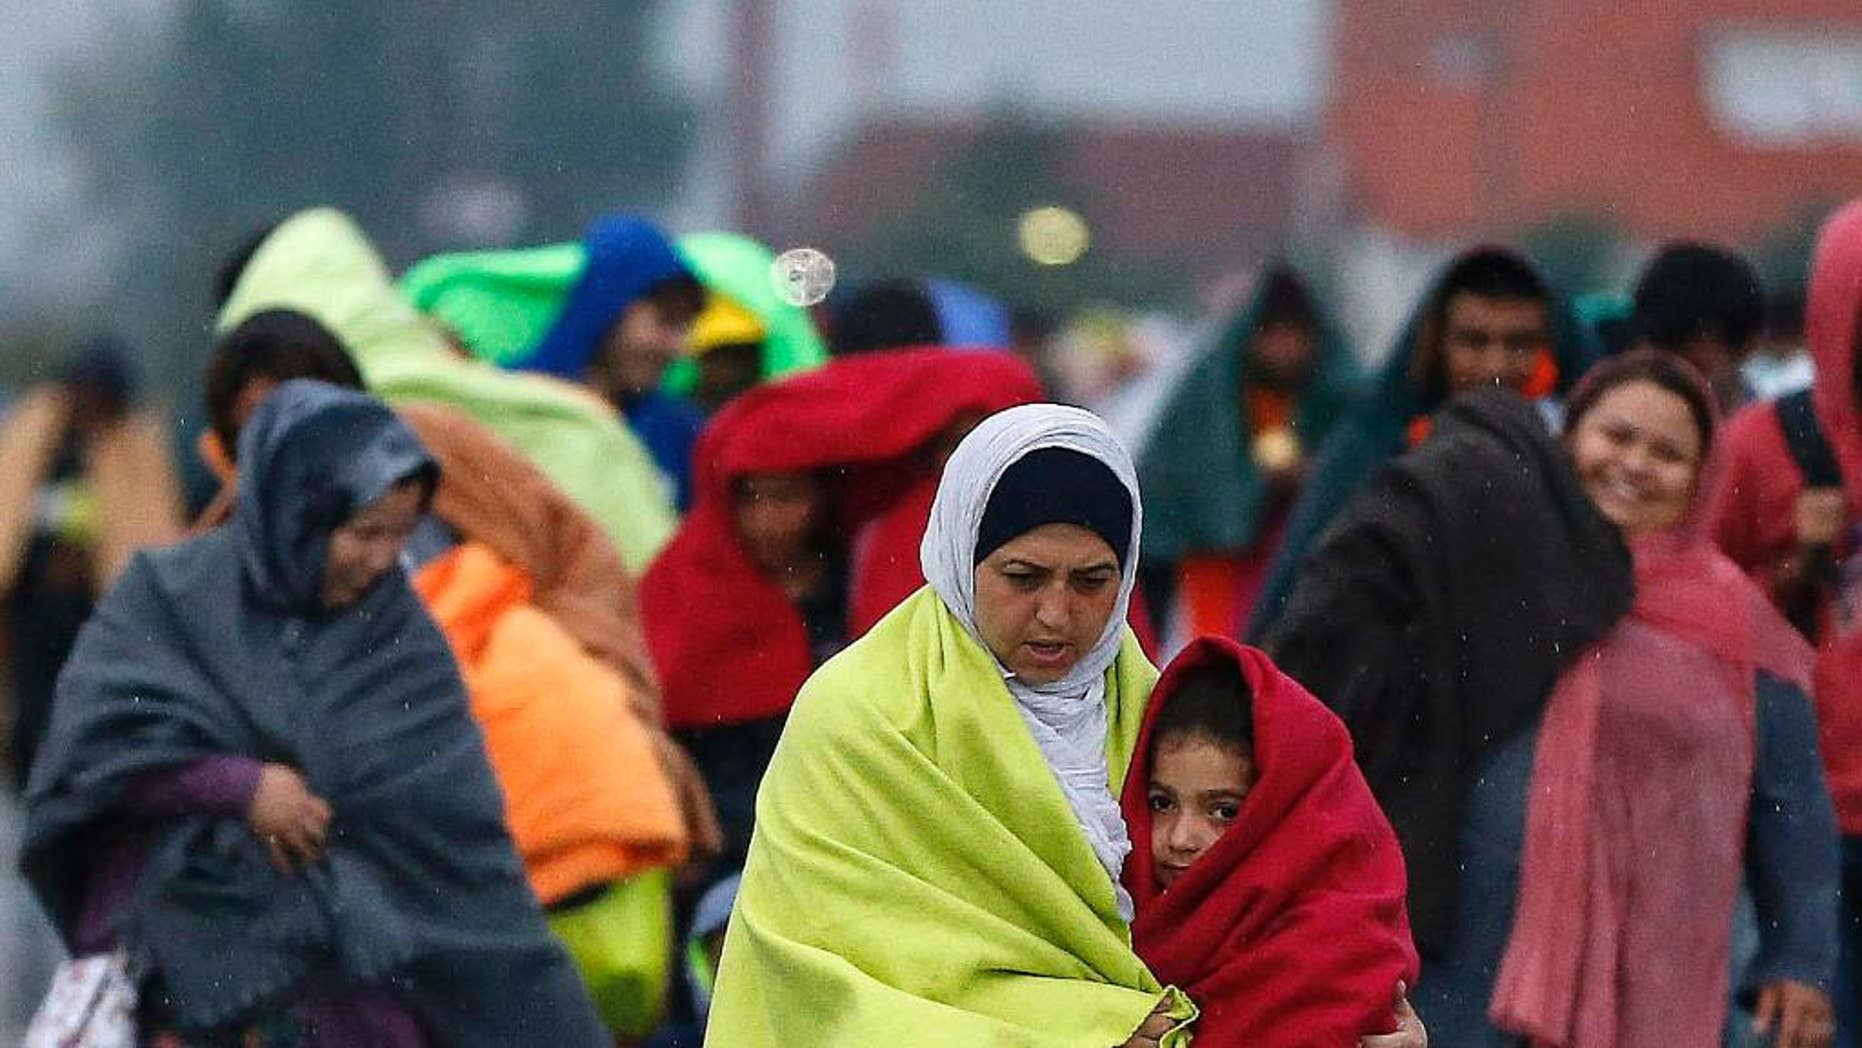 Migrants arrive at the Hungarian-Austrian border in Nickelsdorf, Austria, Saturday, Sept. 5, 2015, where they came from Budapest as Austria in the early-morning hours said it and Germany would let them in.